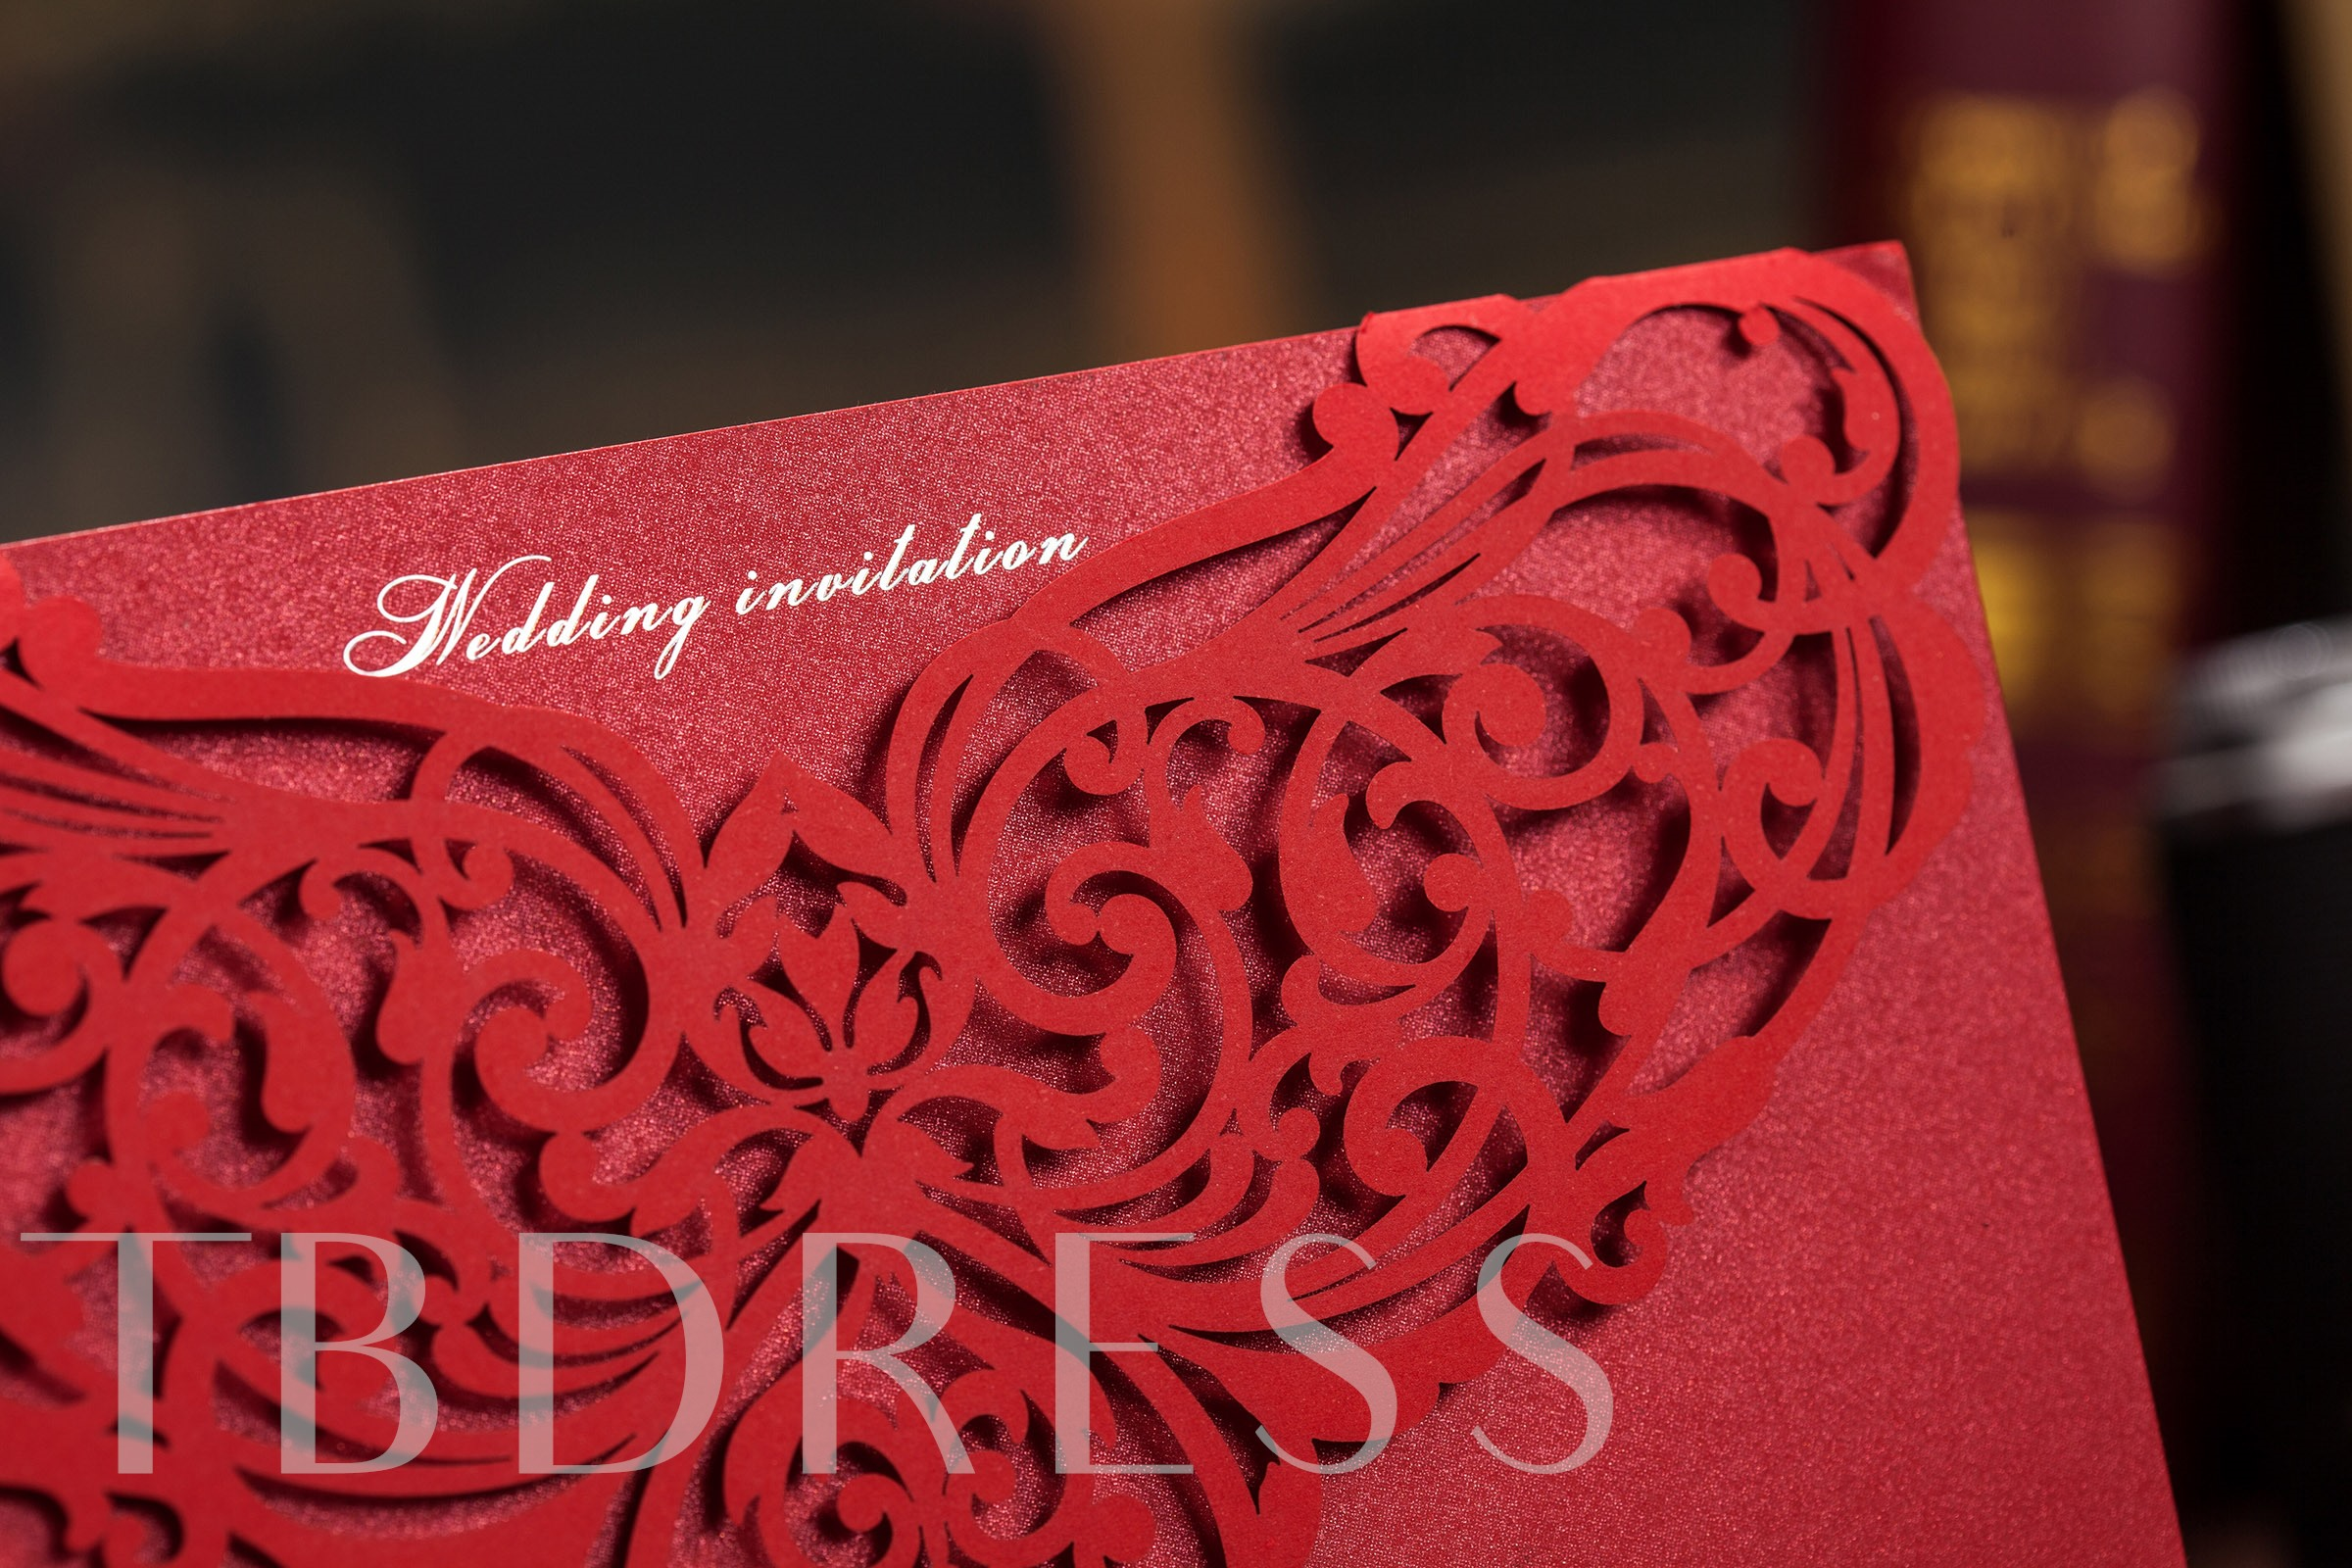 Wedding Invitation Cards (20 Pieces One Set)